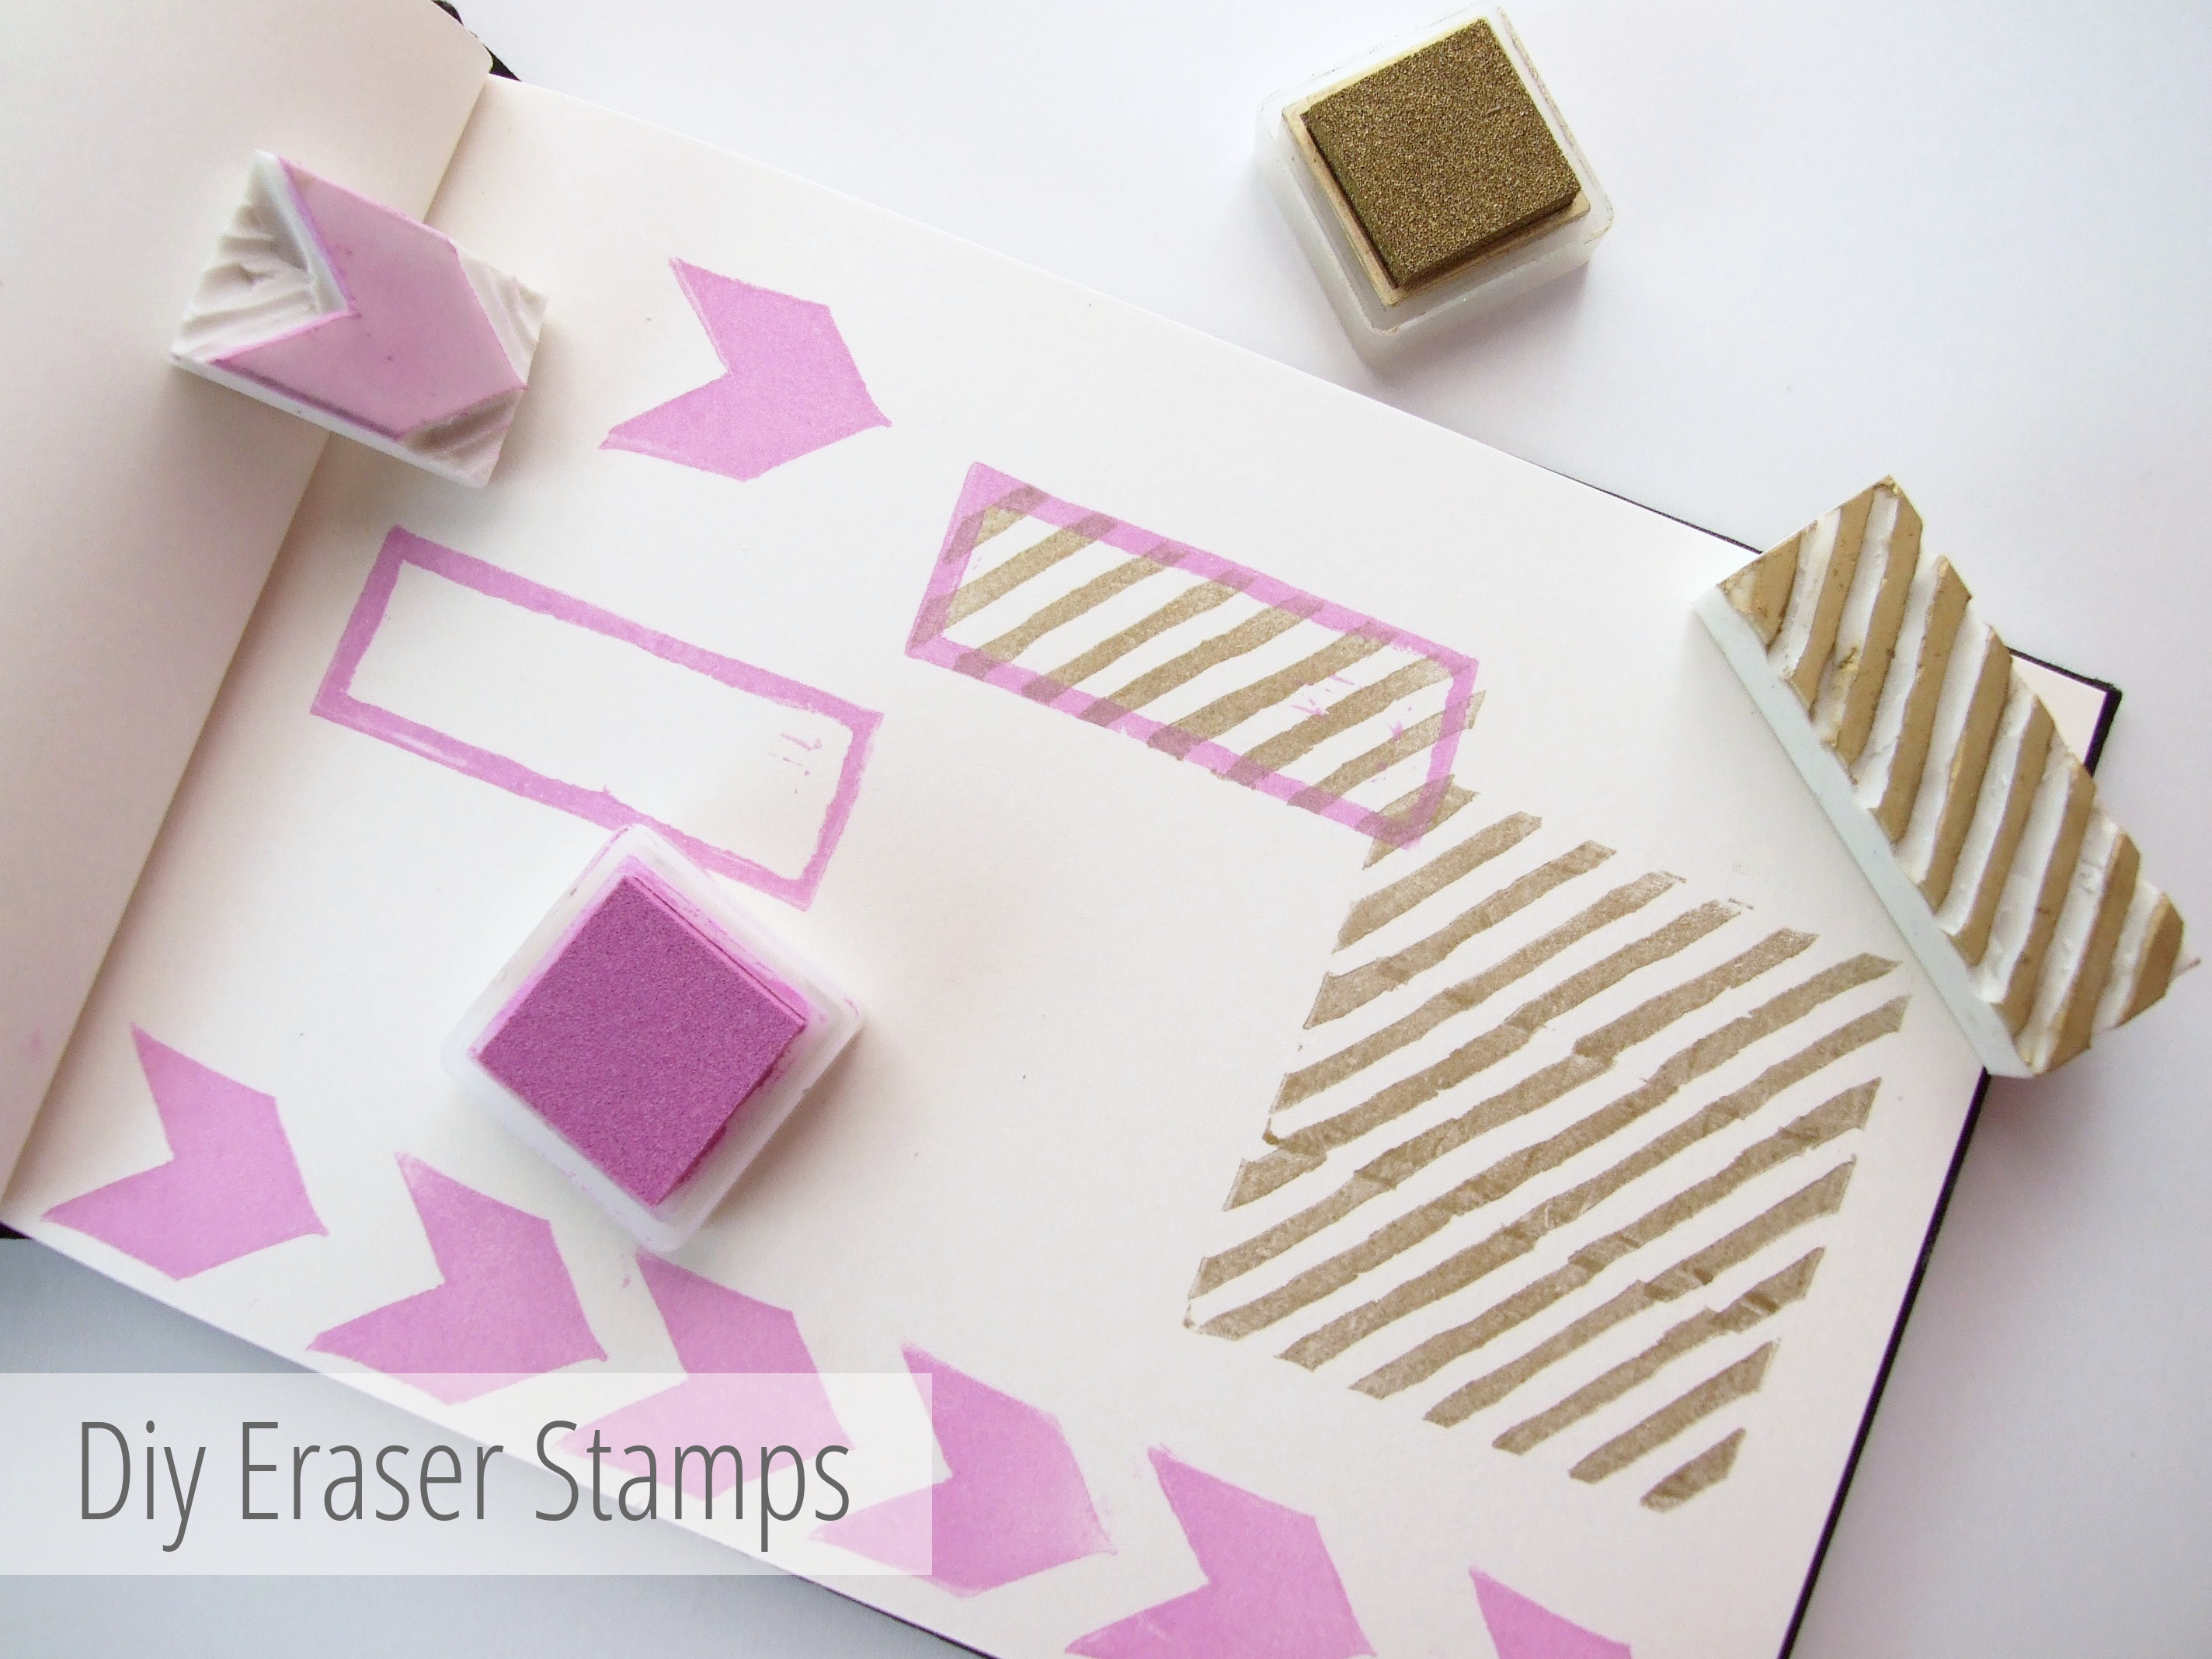 Picture of Make Your Own Diy Custom Eraser Stamps.